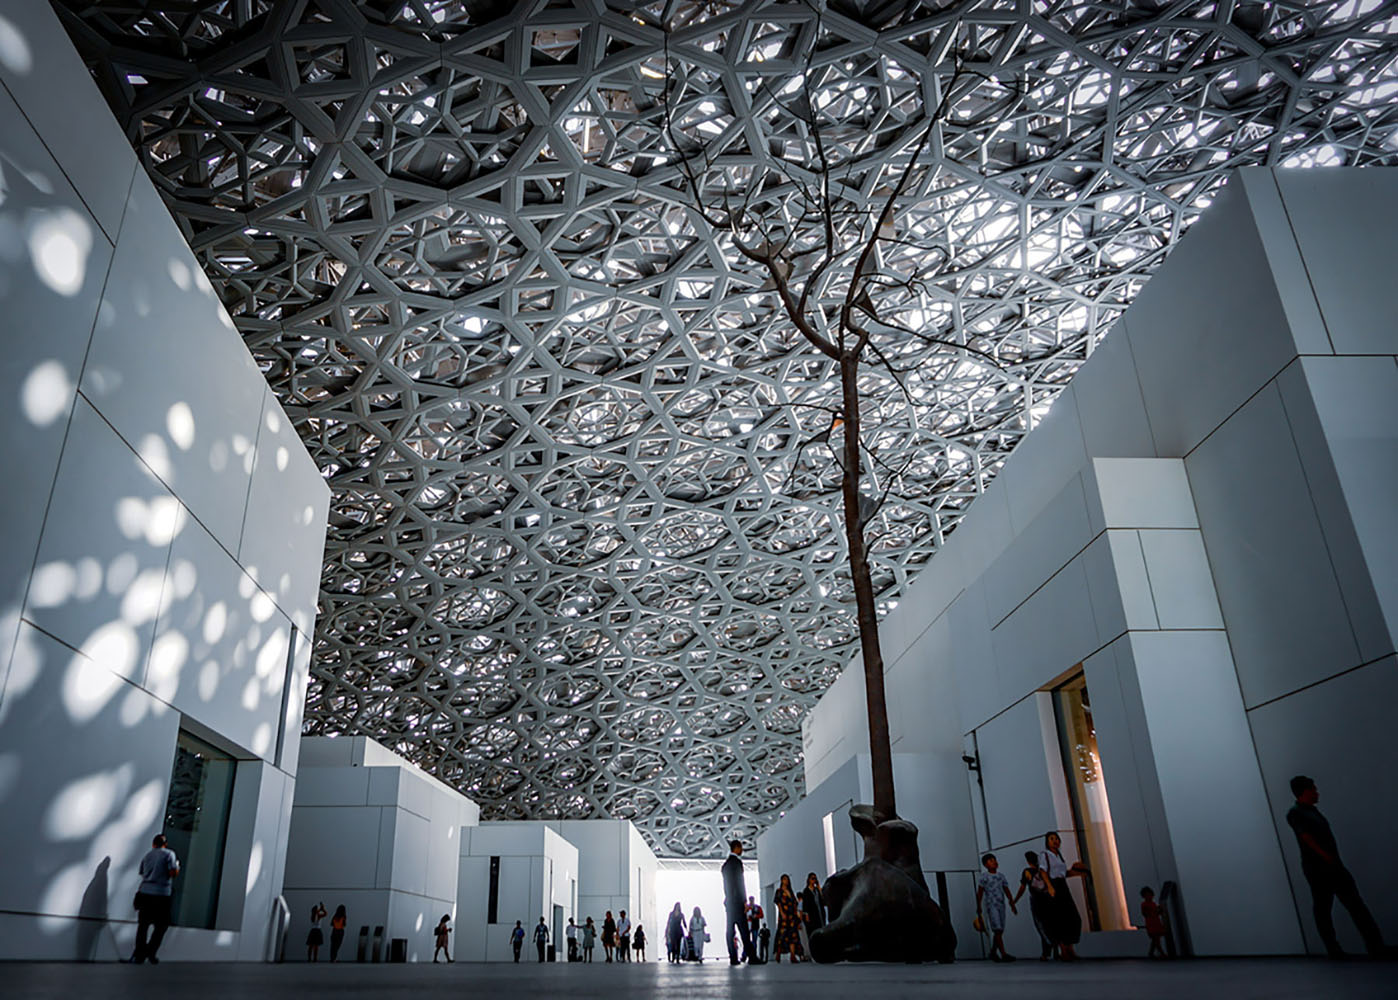 The interior of Louvre Abu Dhabi, showcasing its signature ceiling